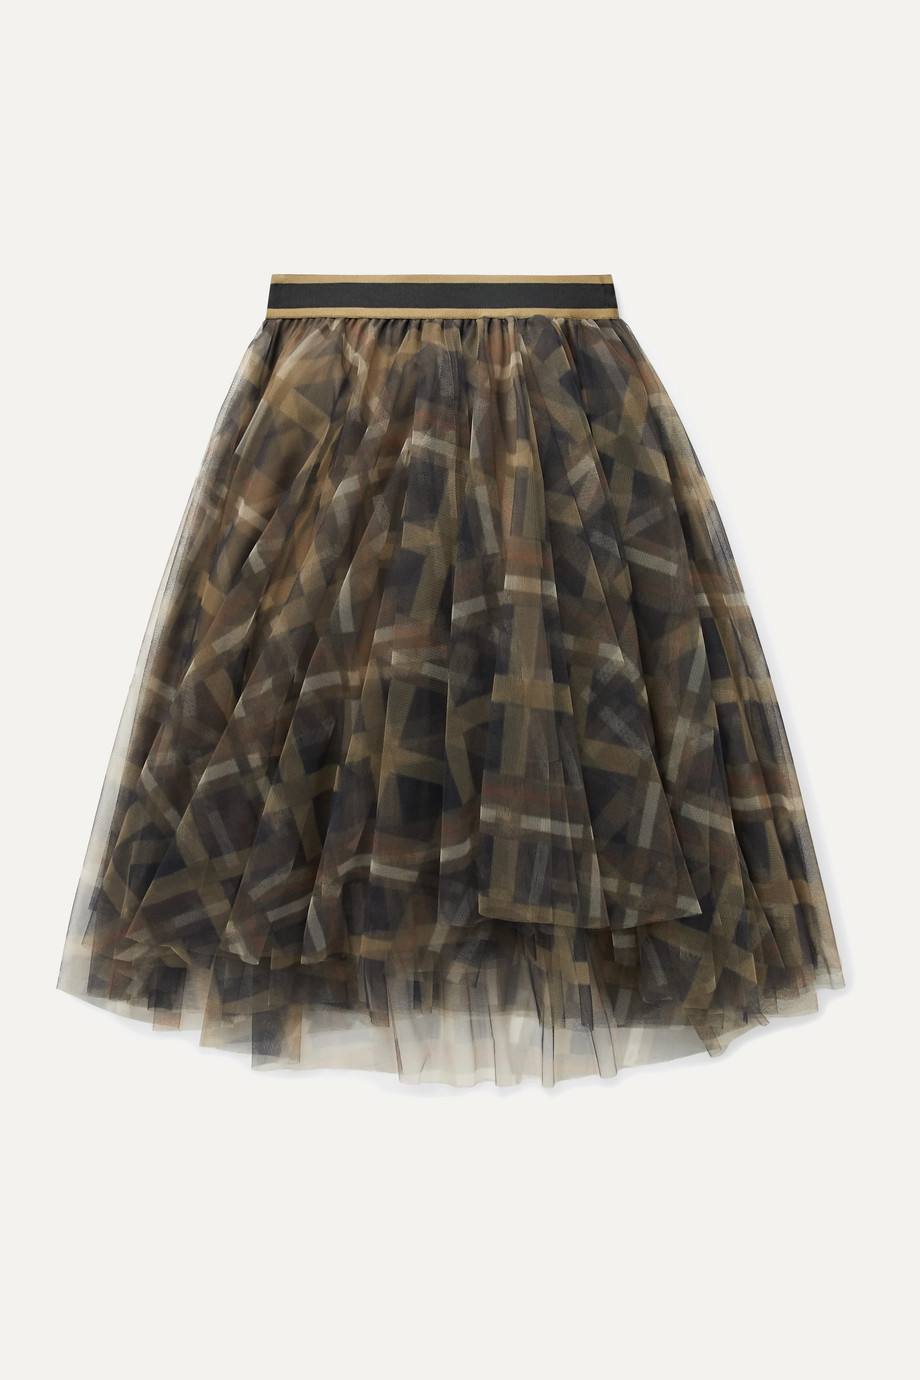 Brunello Cucinelli Kids Ages 8 - 10 plaid tulle skirt